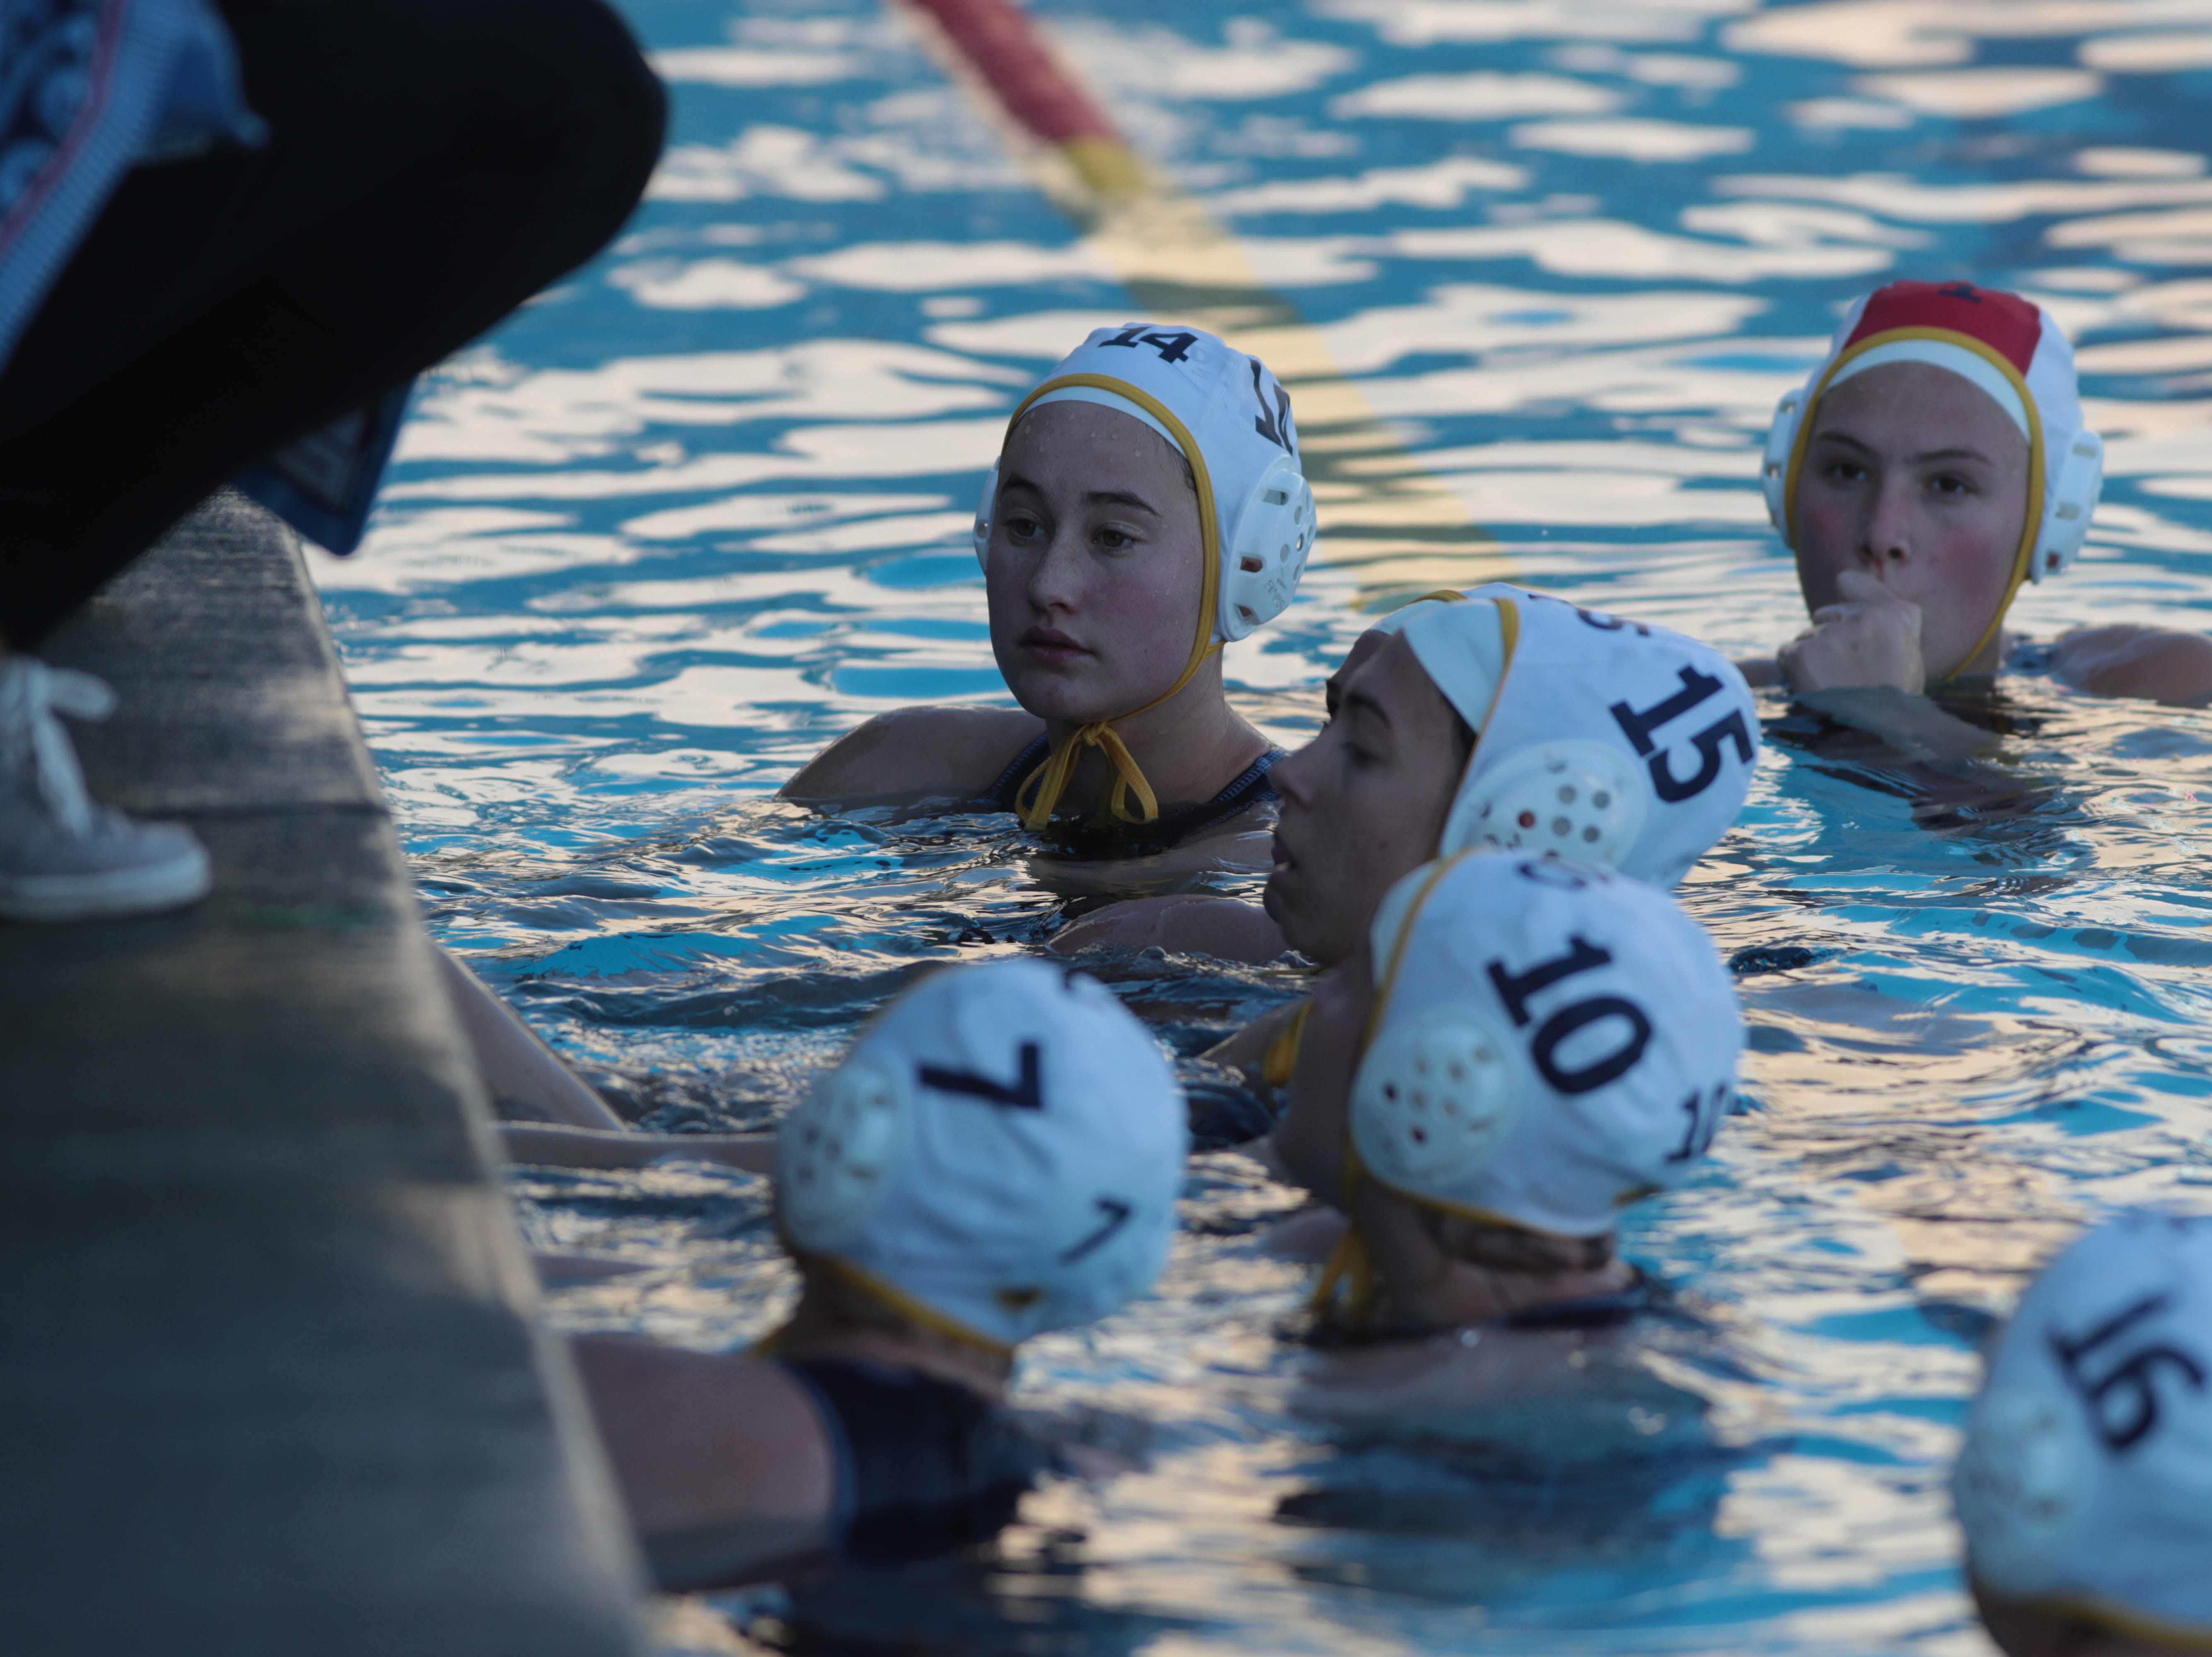 La Quinta water polo takes a time-out during the CIF Southern Section Division 4 championships, Irvine, Calif., Saturday, February 16, 2019.